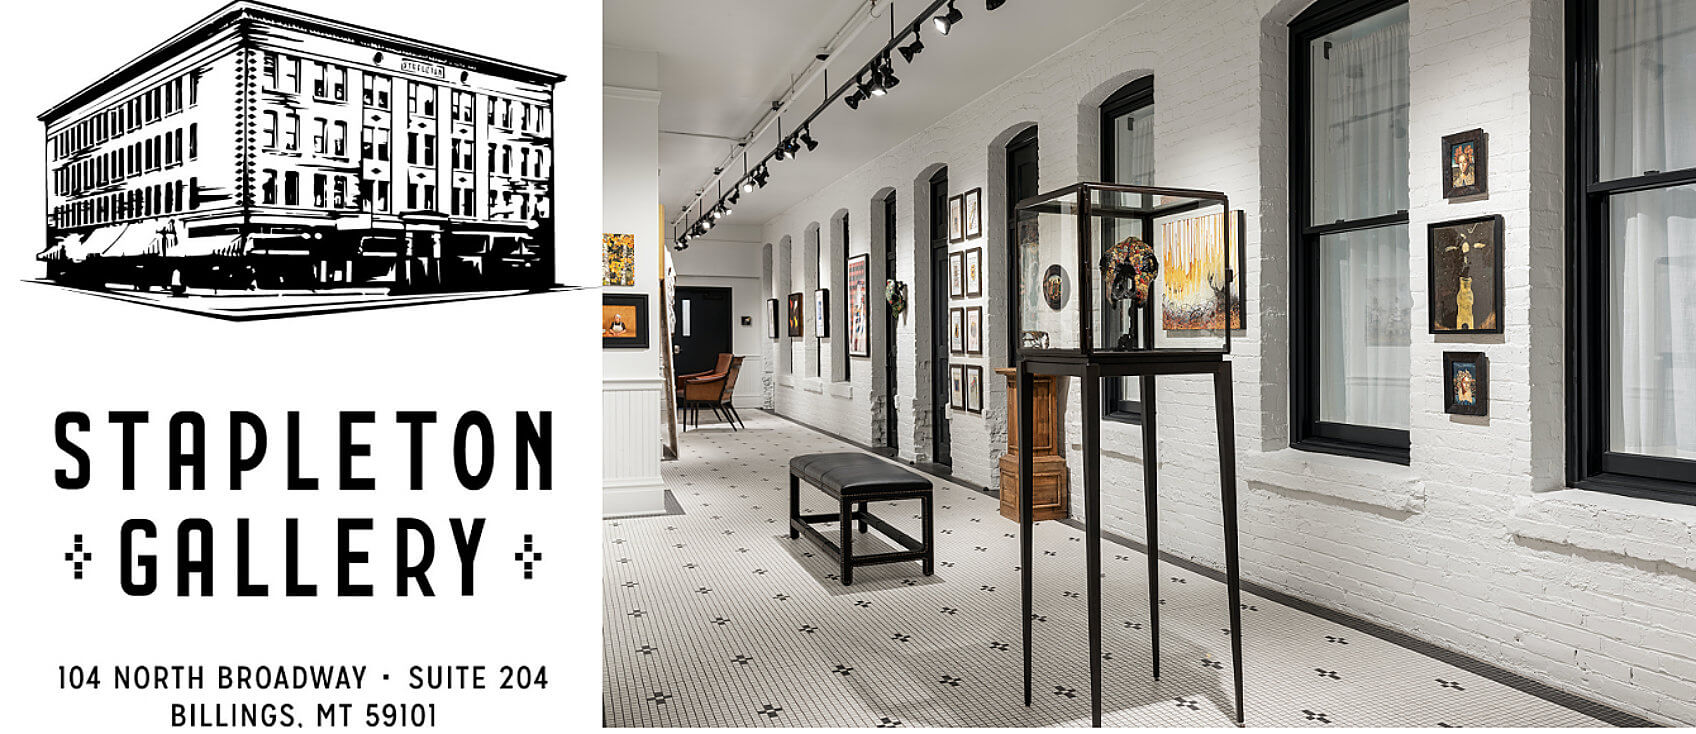 Art and Décor Public Relations: Stapleton Gallery